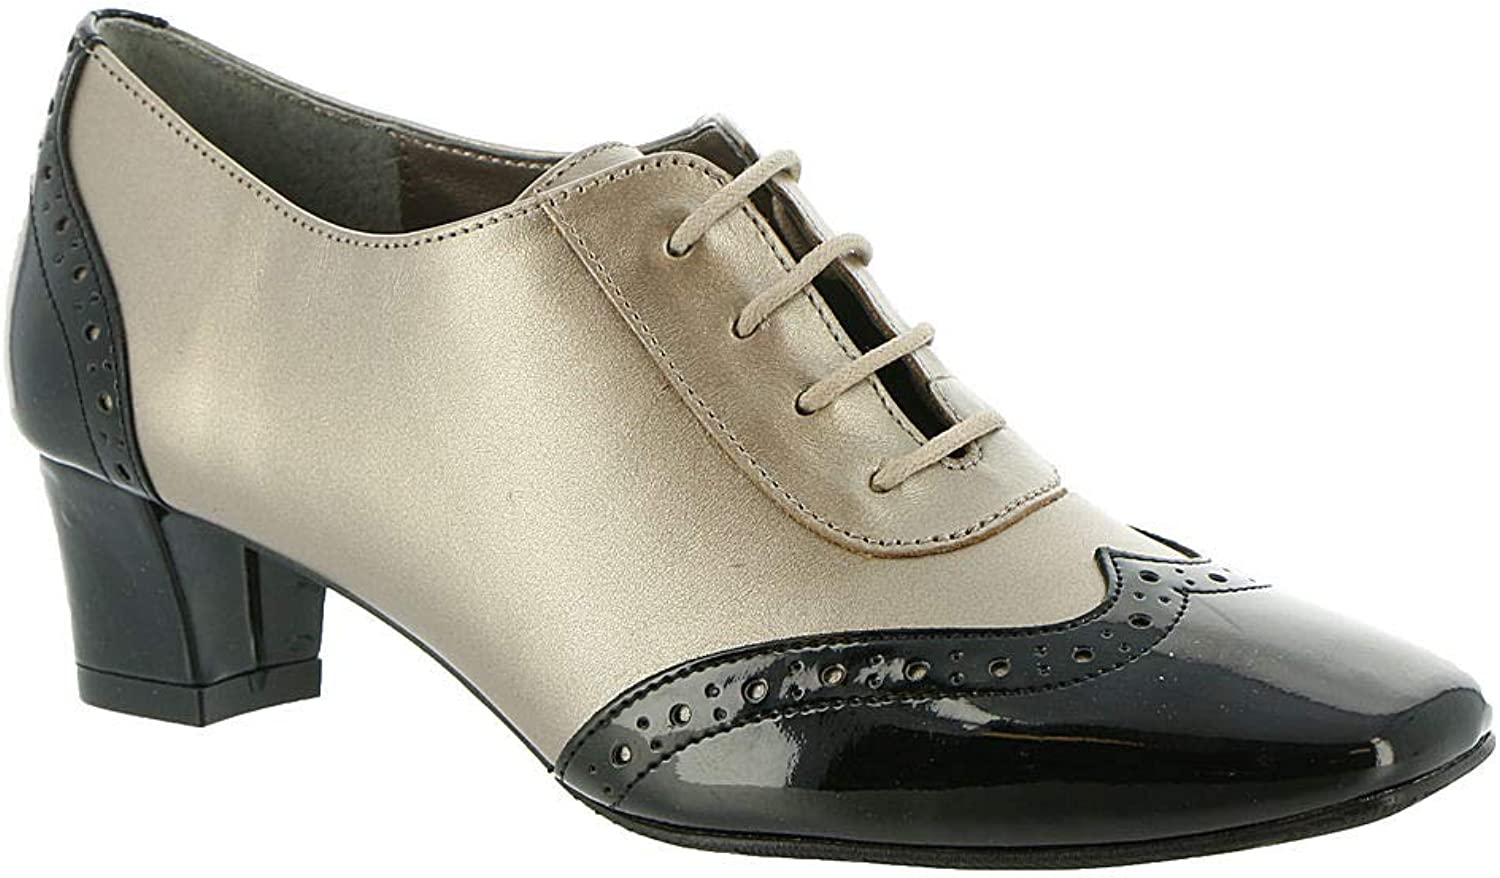 Auditions Womens First Class Square Toe Classic Pumps